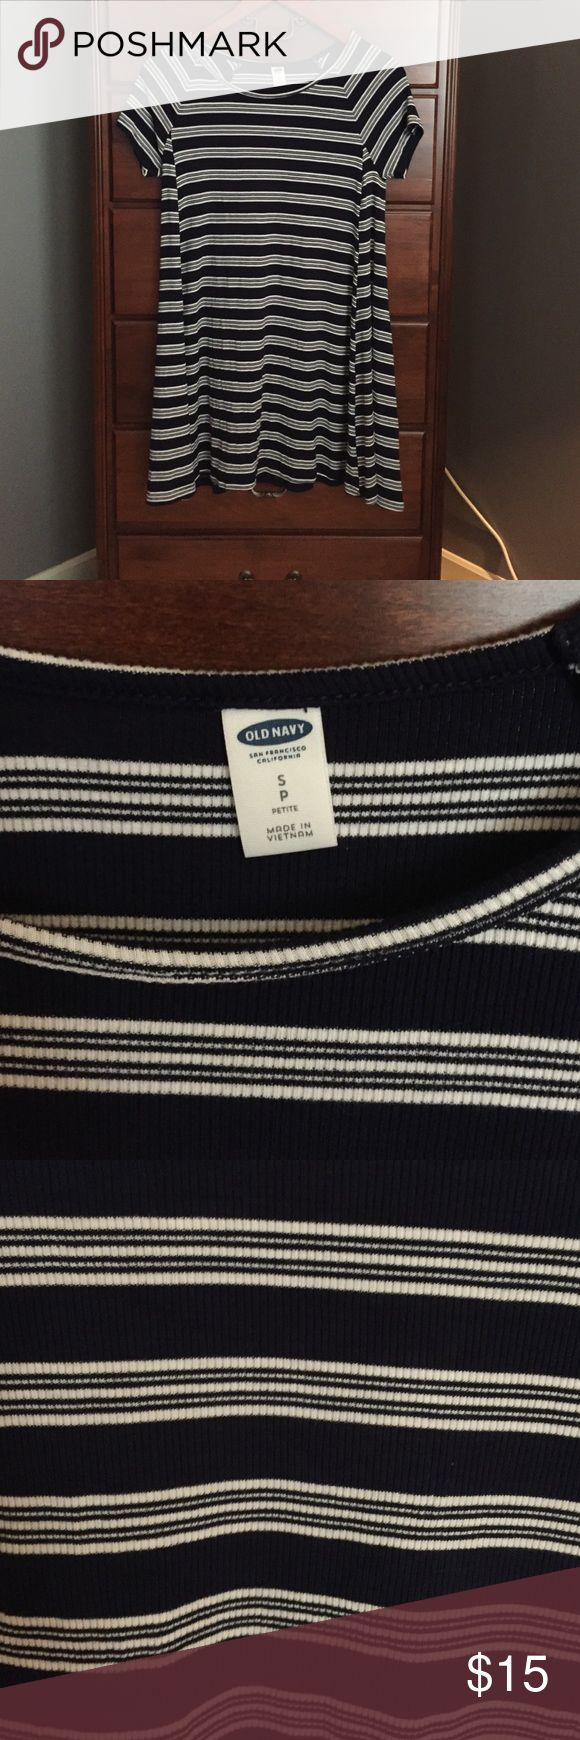 Navy striped dress Worn once. Navy and white striped swing dress Old Navy Dresses